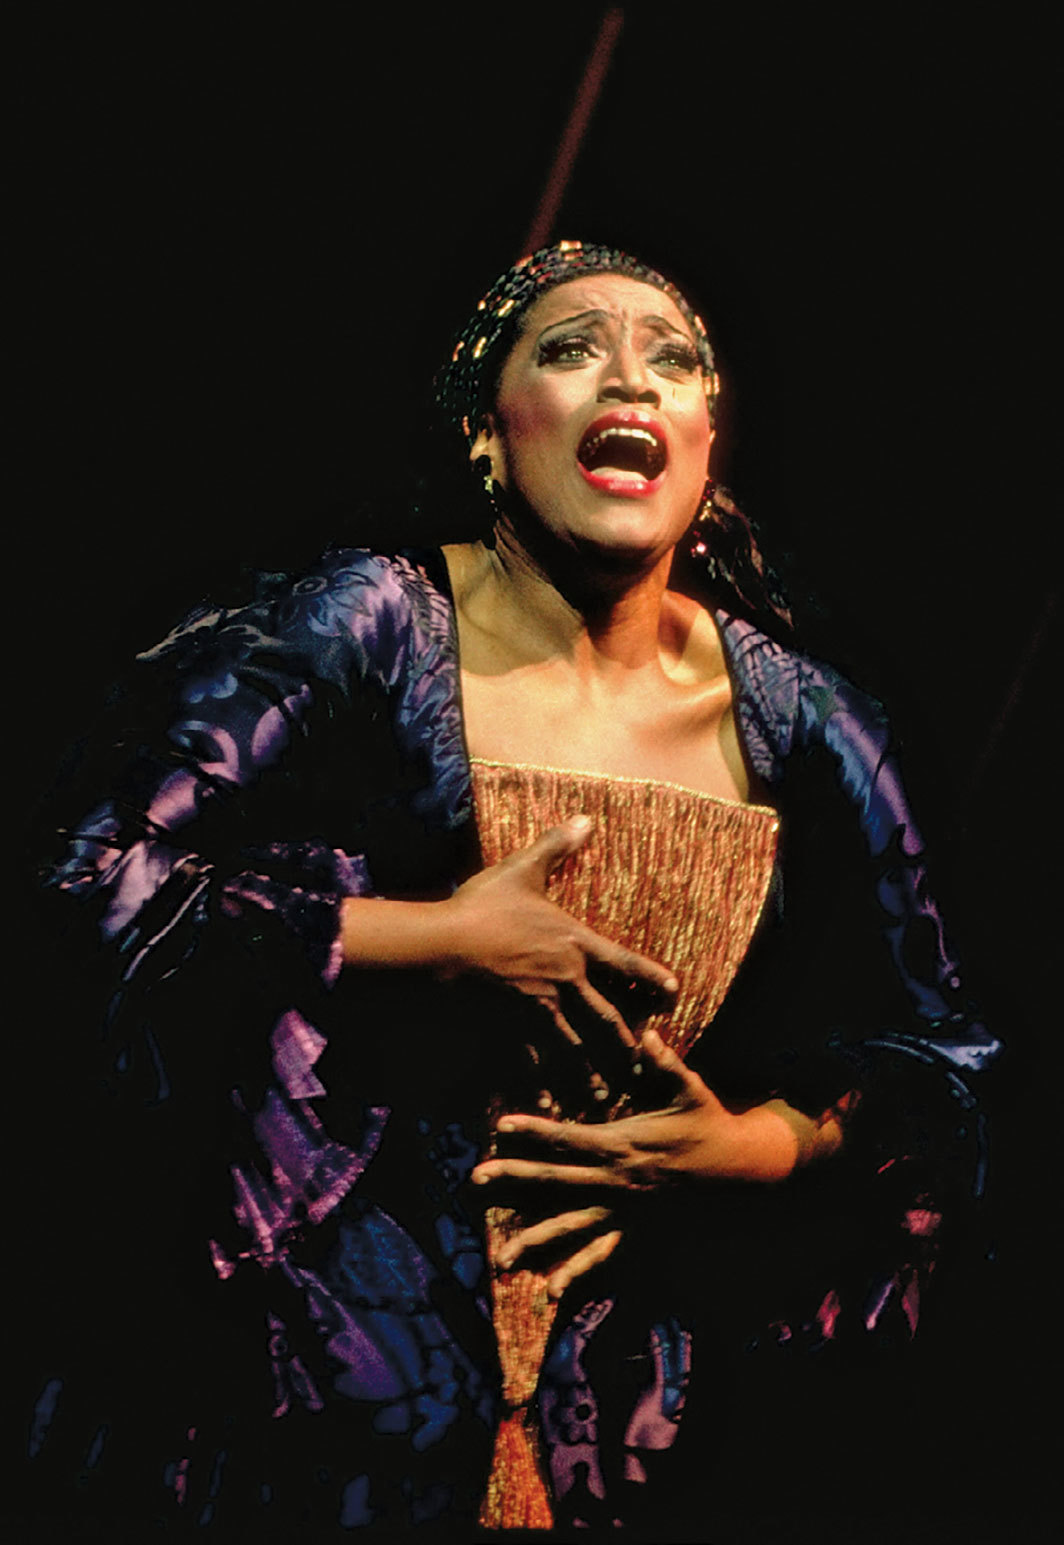 Jessye Norman performing in Richard Strauss's 1916 Ariadne auf Naxos, Op. 60, Metropolitan Opera, New York, March 1993. Photo: Beatriz Schiller/The LIFE Images Collection via Getty.